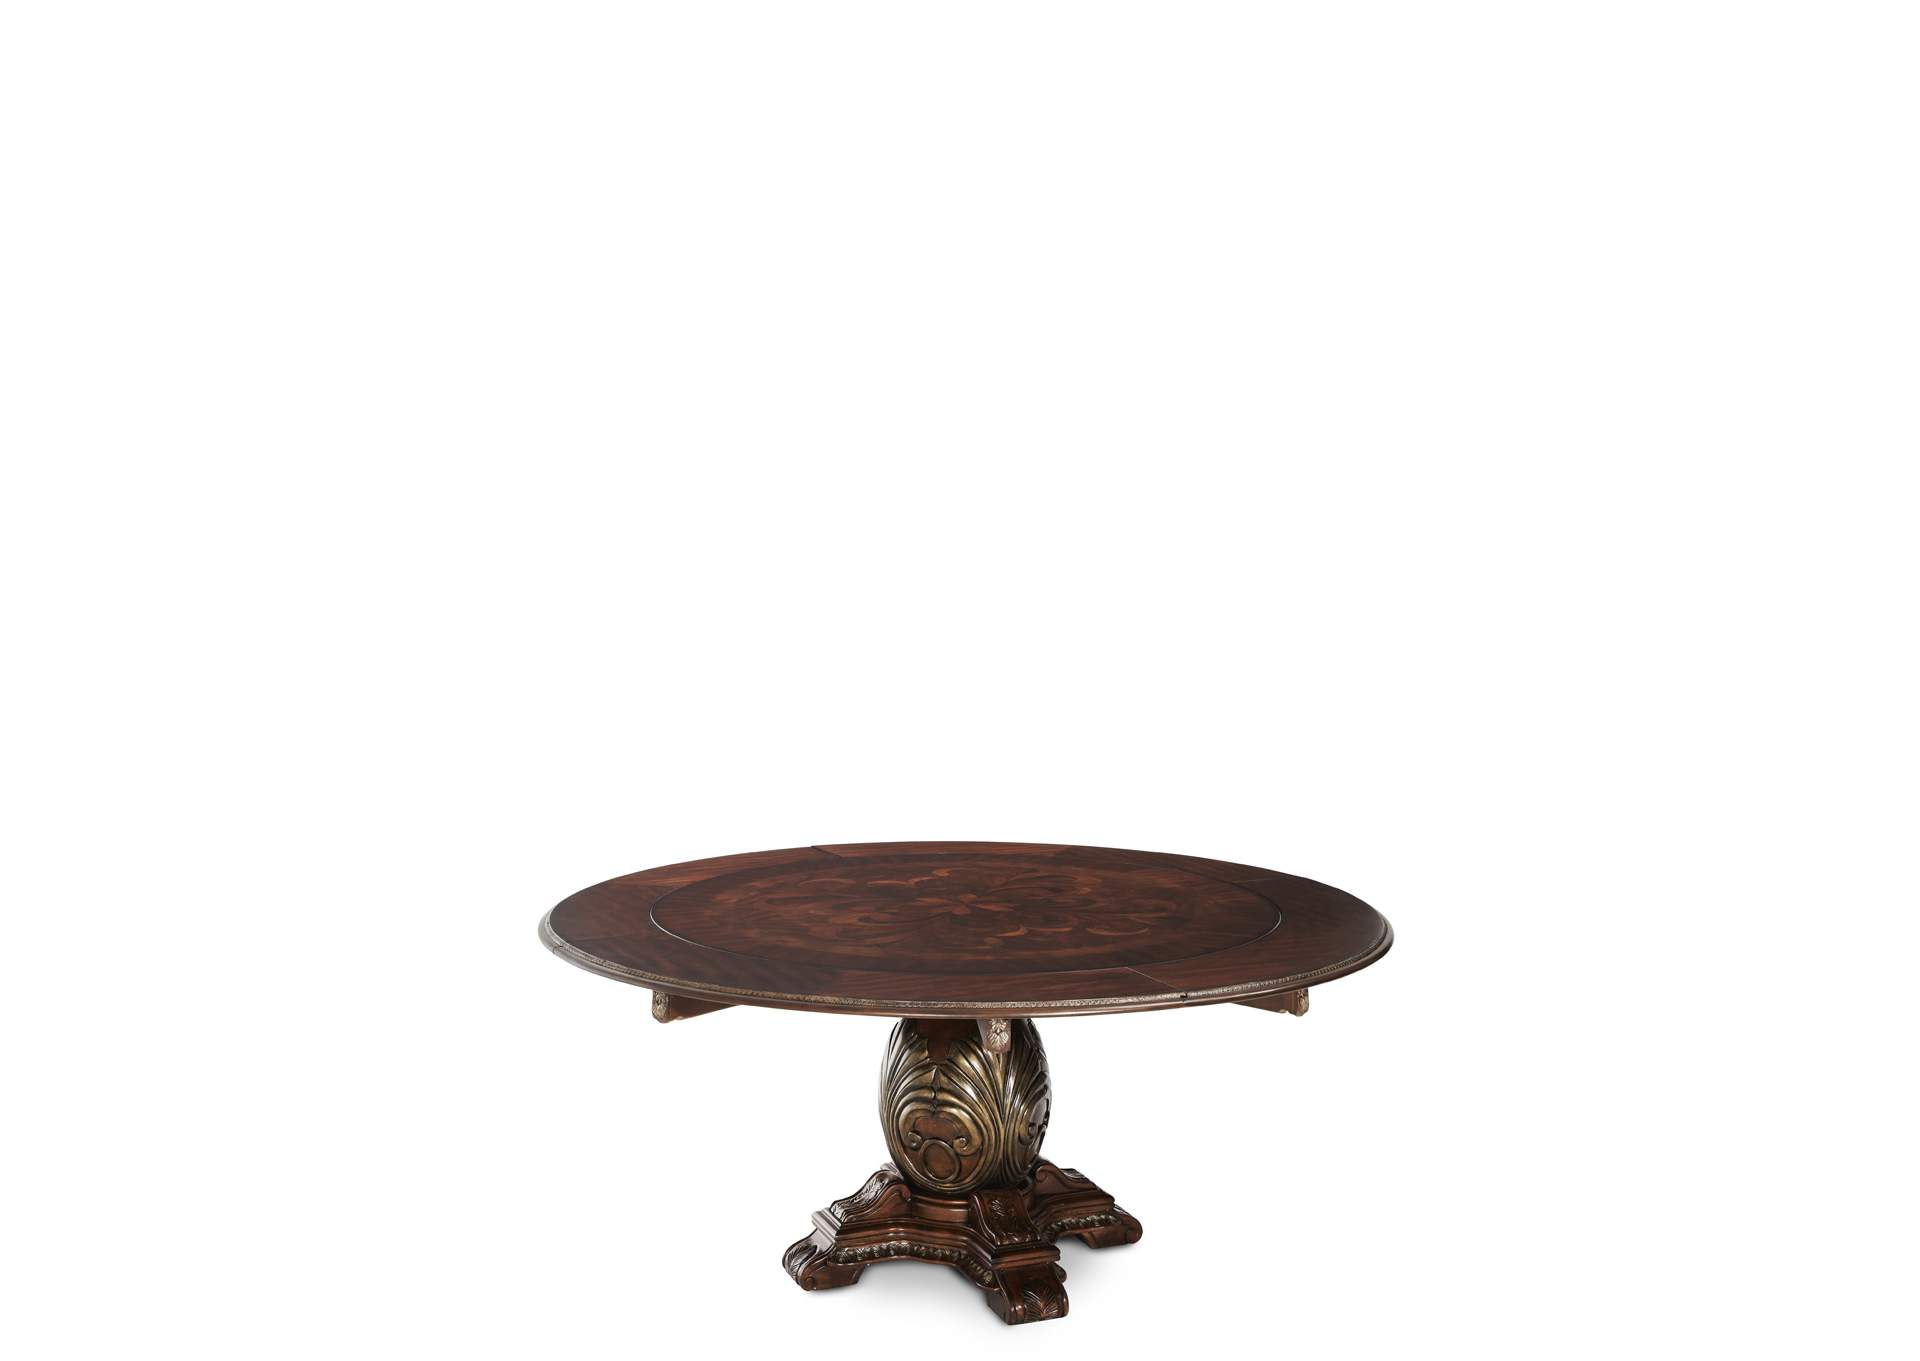 Macks Furniture Warehouse The Sovereign Soft Mink Round Dining